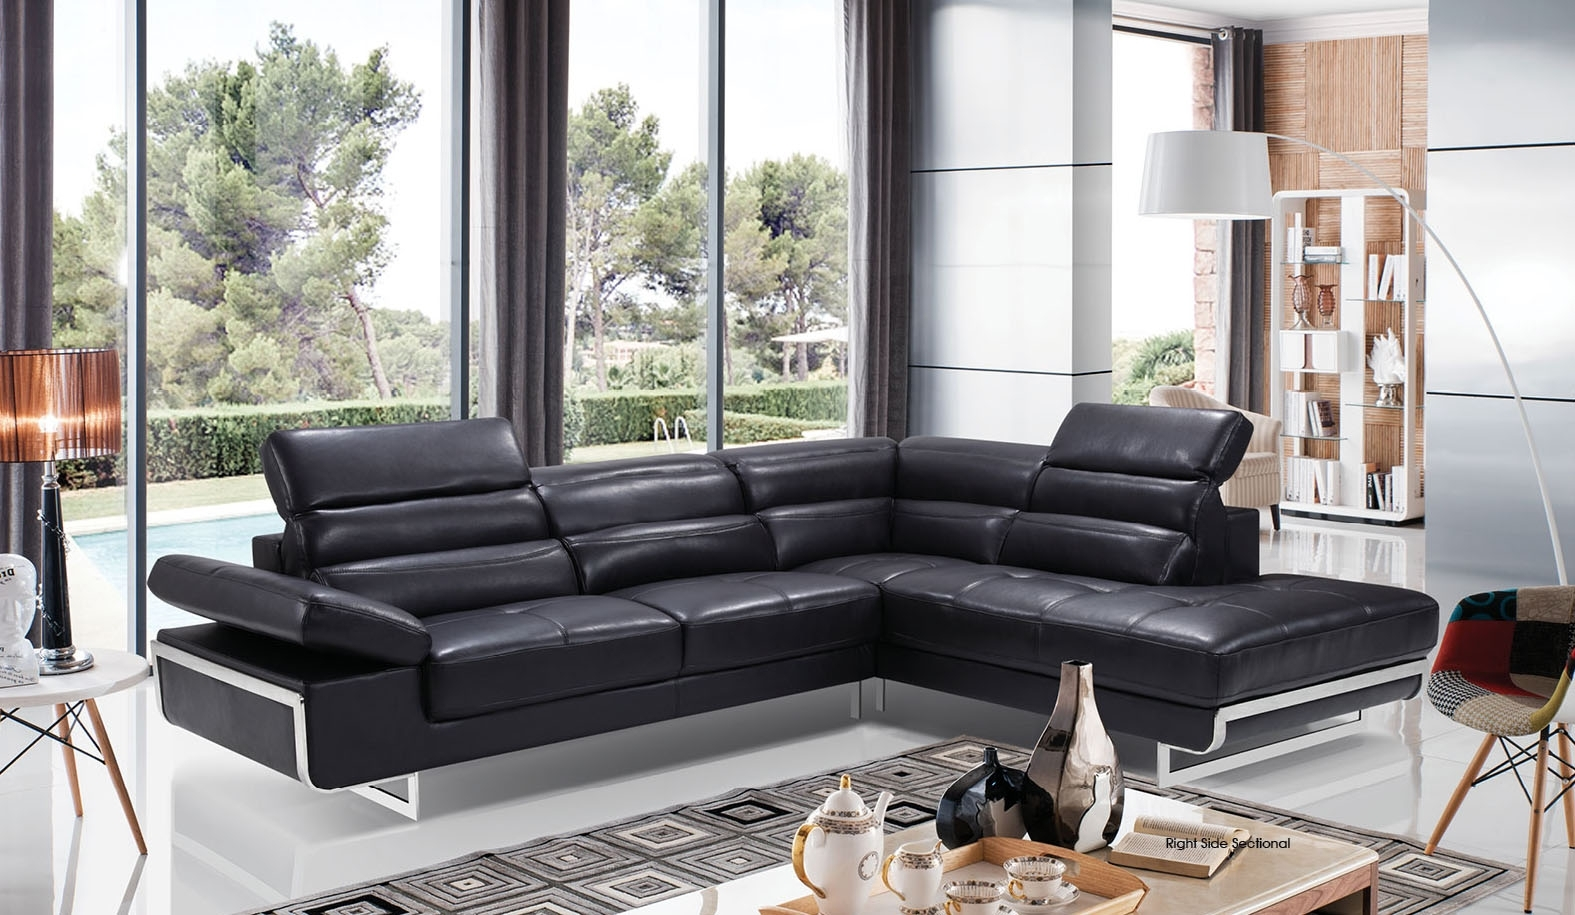 High Class Italian Leather Living Room Furniture Jacksonville Within Jacksonville Florida Sectional Sofas (View 4 of 10)